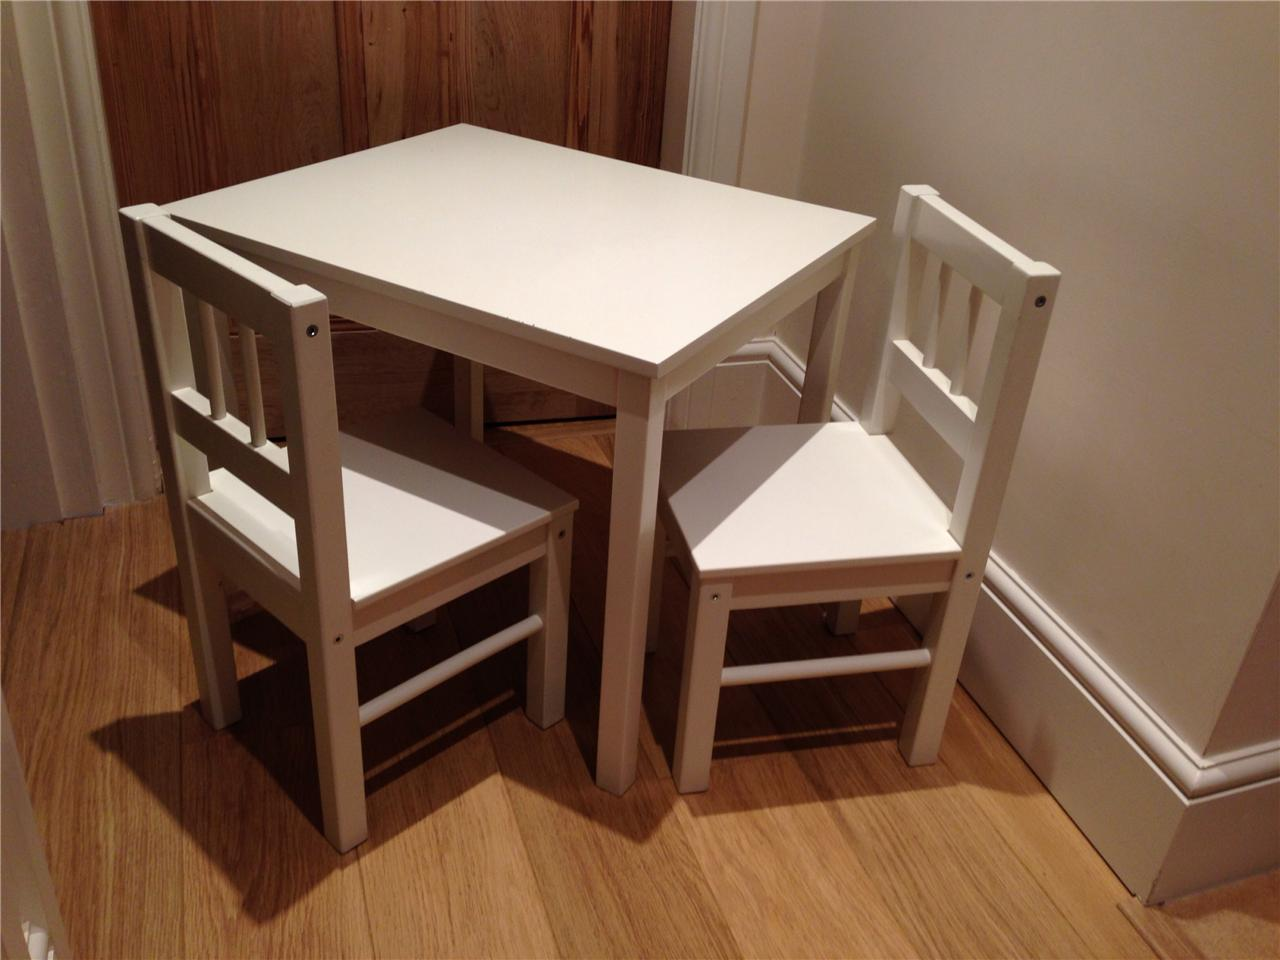 ikea childrens white wooden table and chairs pick near wrexham and chester ebay. Black Bedroom Furniture Sets. Home Design Ideas